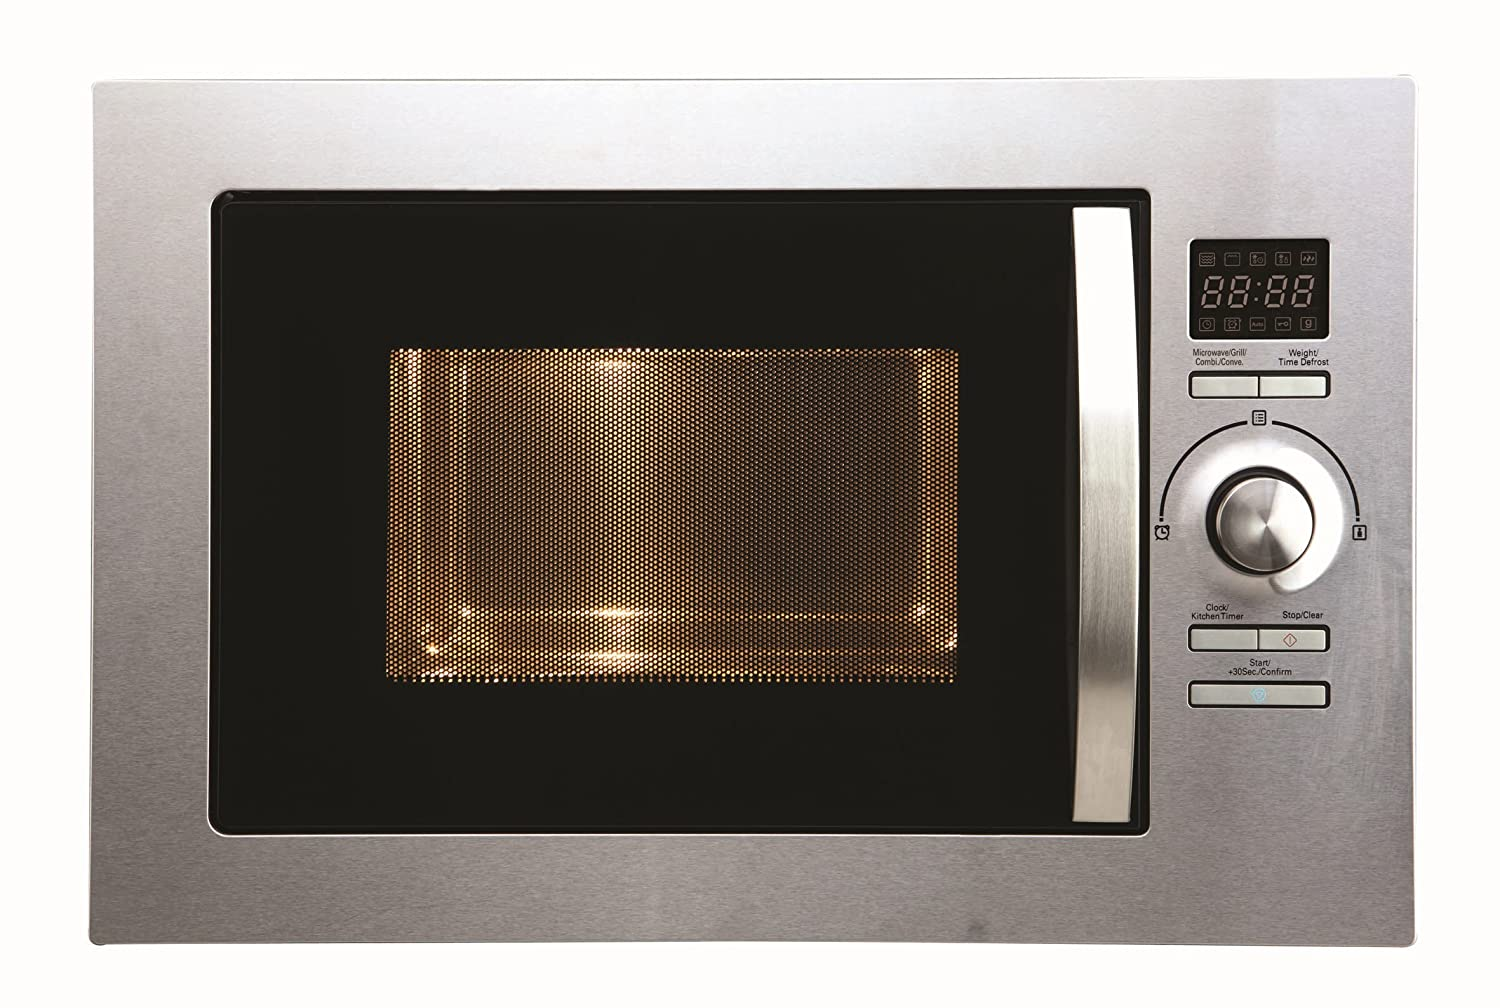 Cookology Built-in Combi Microwave Oven & Grill | BMOG25LIXH Stainless Steel 25 Litre